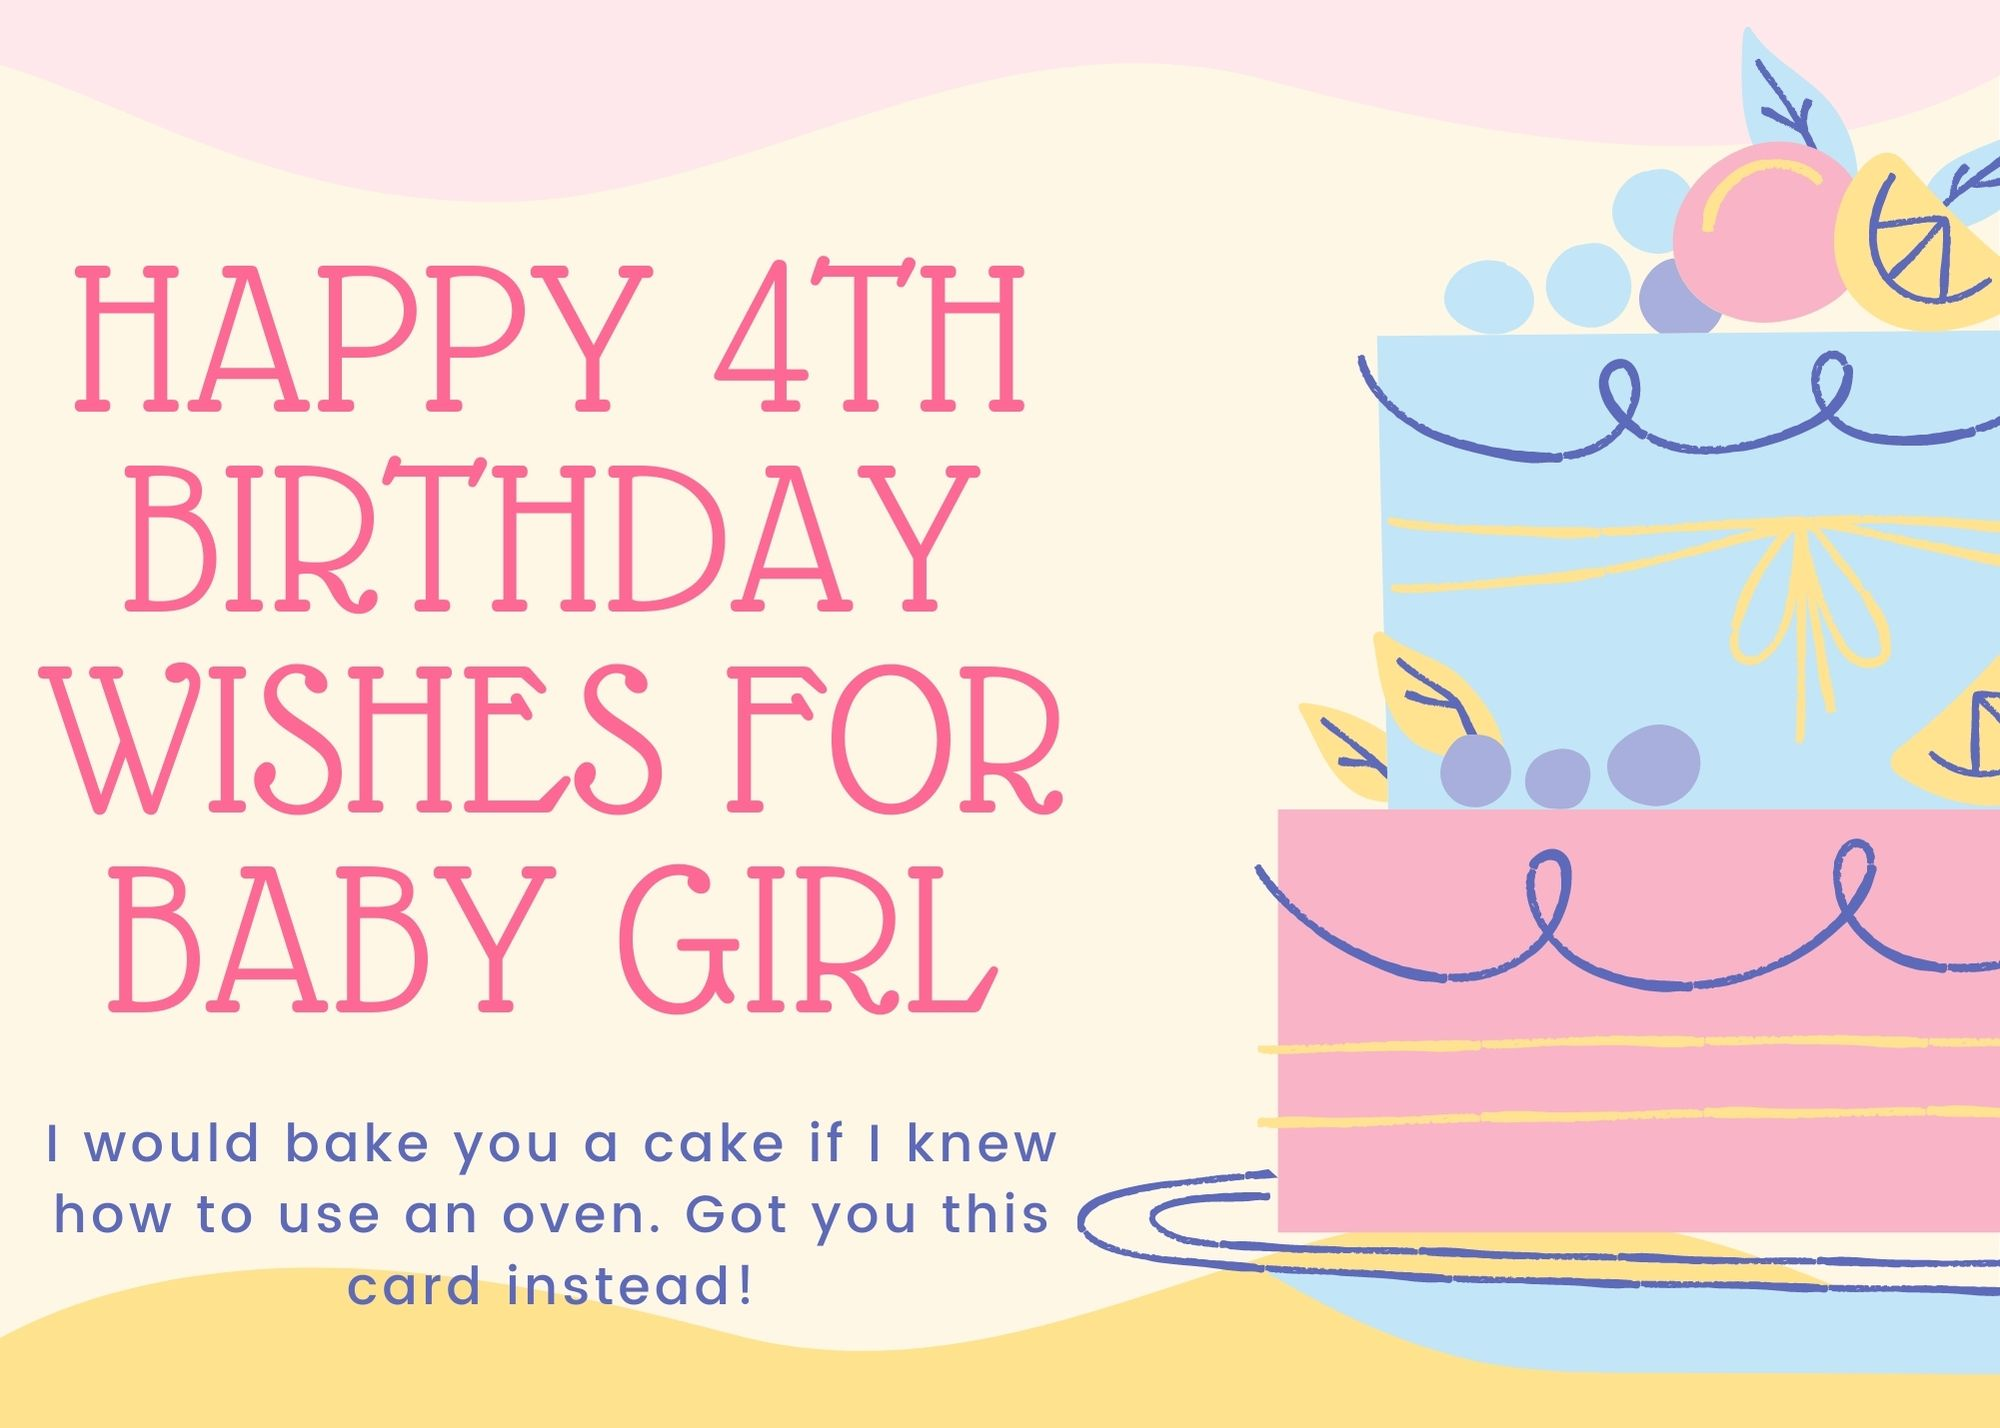 Happy 4th Birthday Wishes For Baby Girl